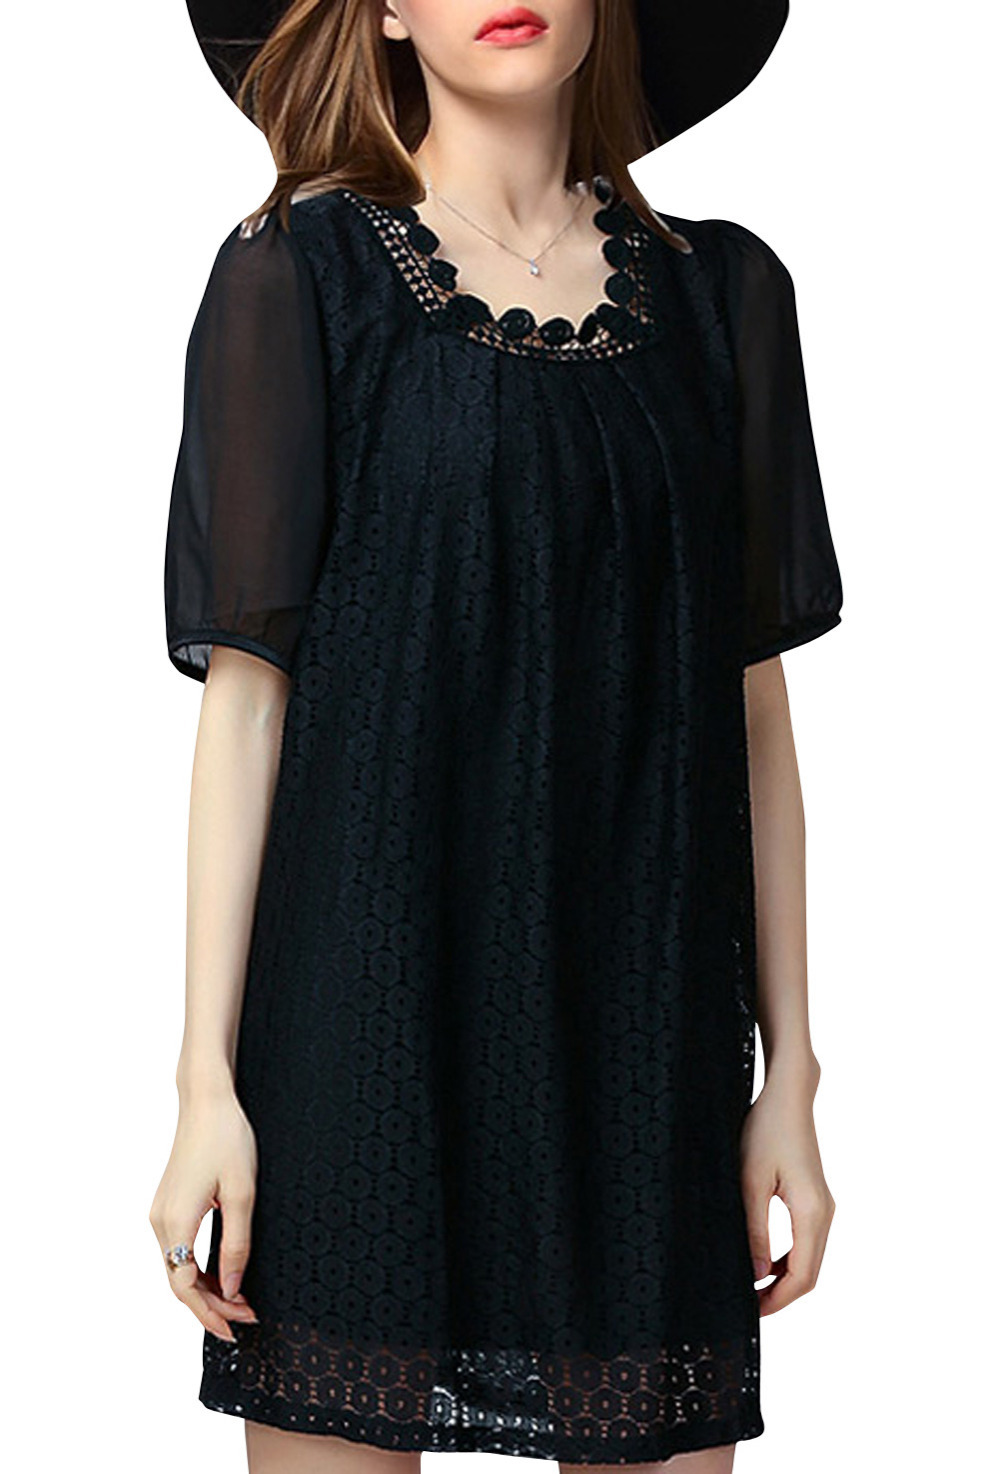 Summer Style 2015 Print Women Summer Dress Casual Lace Round Neck Sheer Sleeve Dress  Women Vestidos Femininos Plus Size Dresses